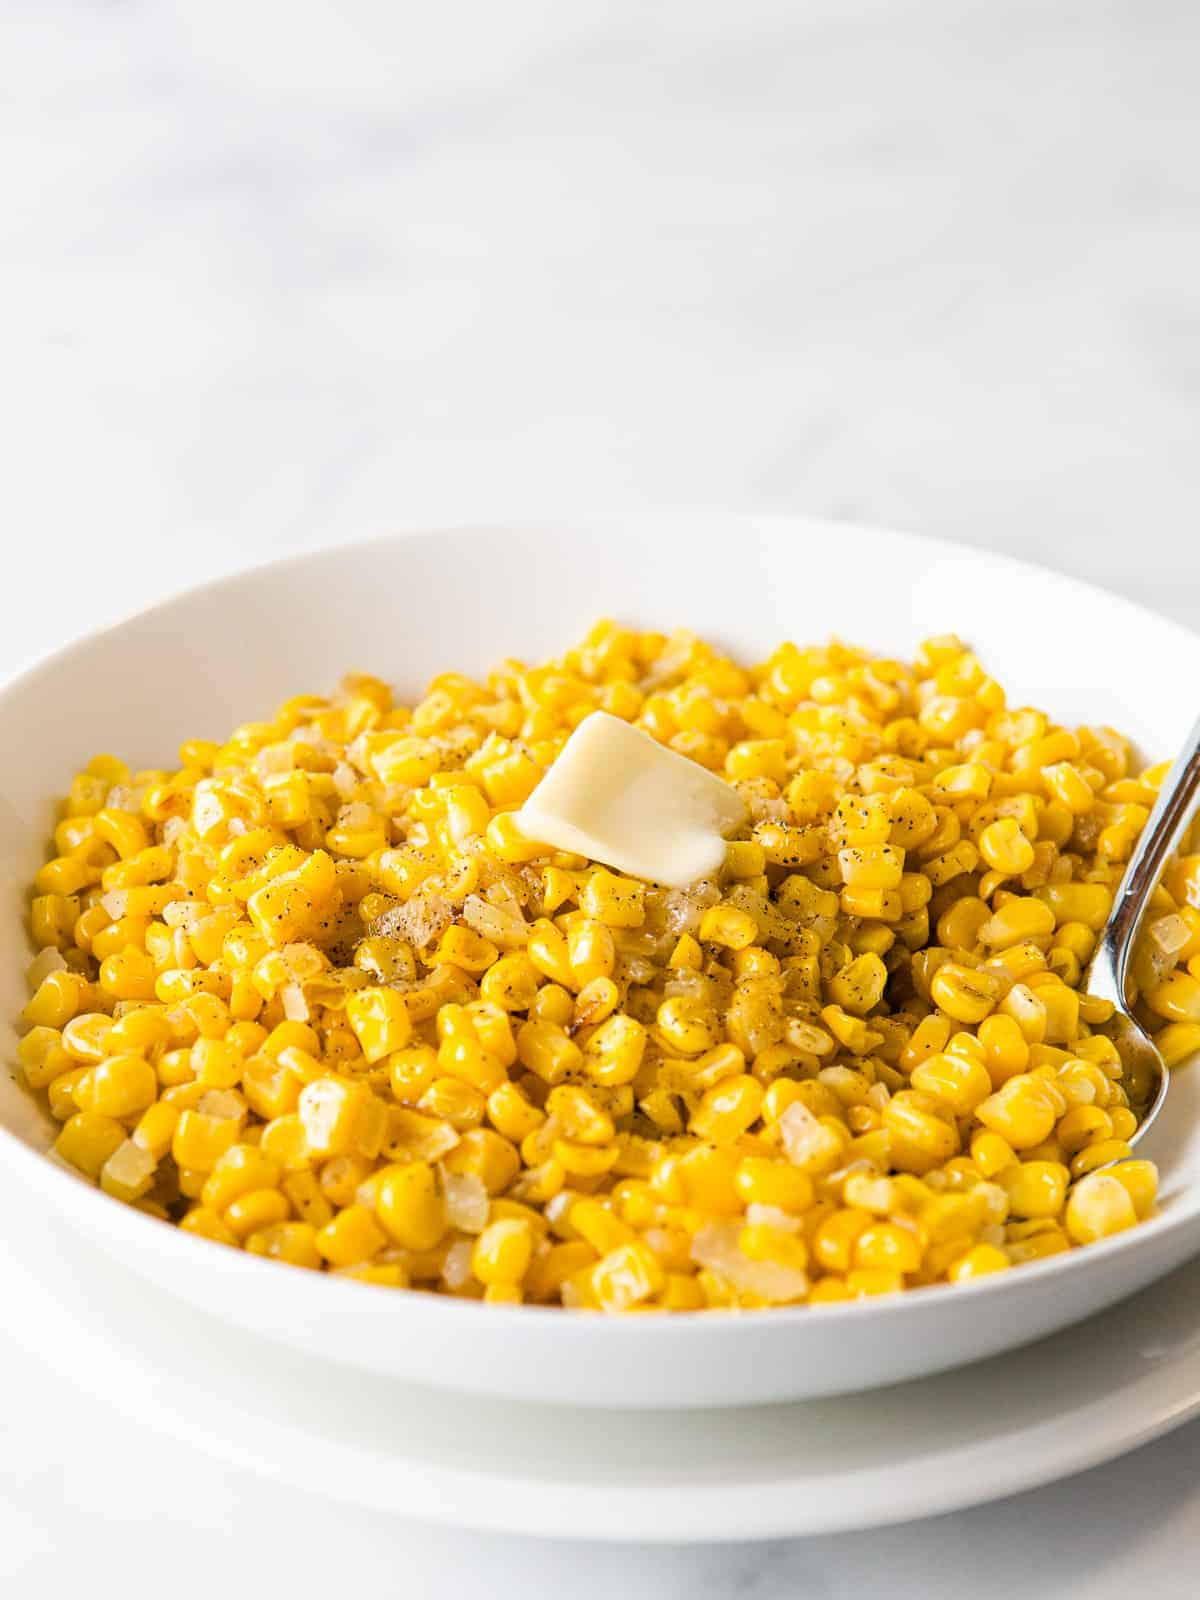 Cooked frozen corn with onions and black pepper, topped with butter, in a white bowl.